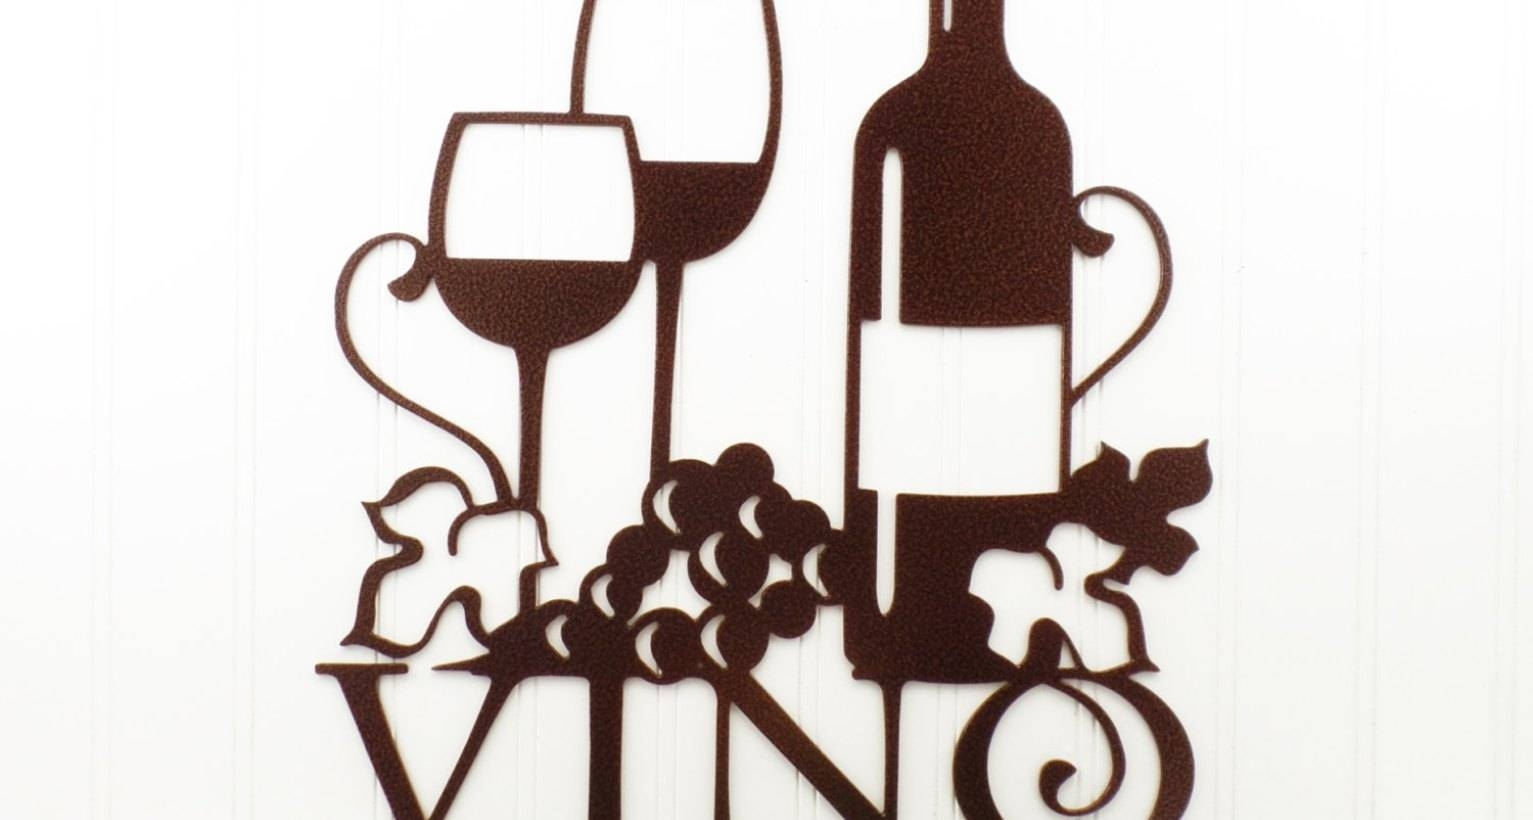 Signs : Stunning Wine Themed Wall Art 29 In Black And Teal Wall Regarding Recent Wine Theme Wall Art (Gallery 3 of 20)